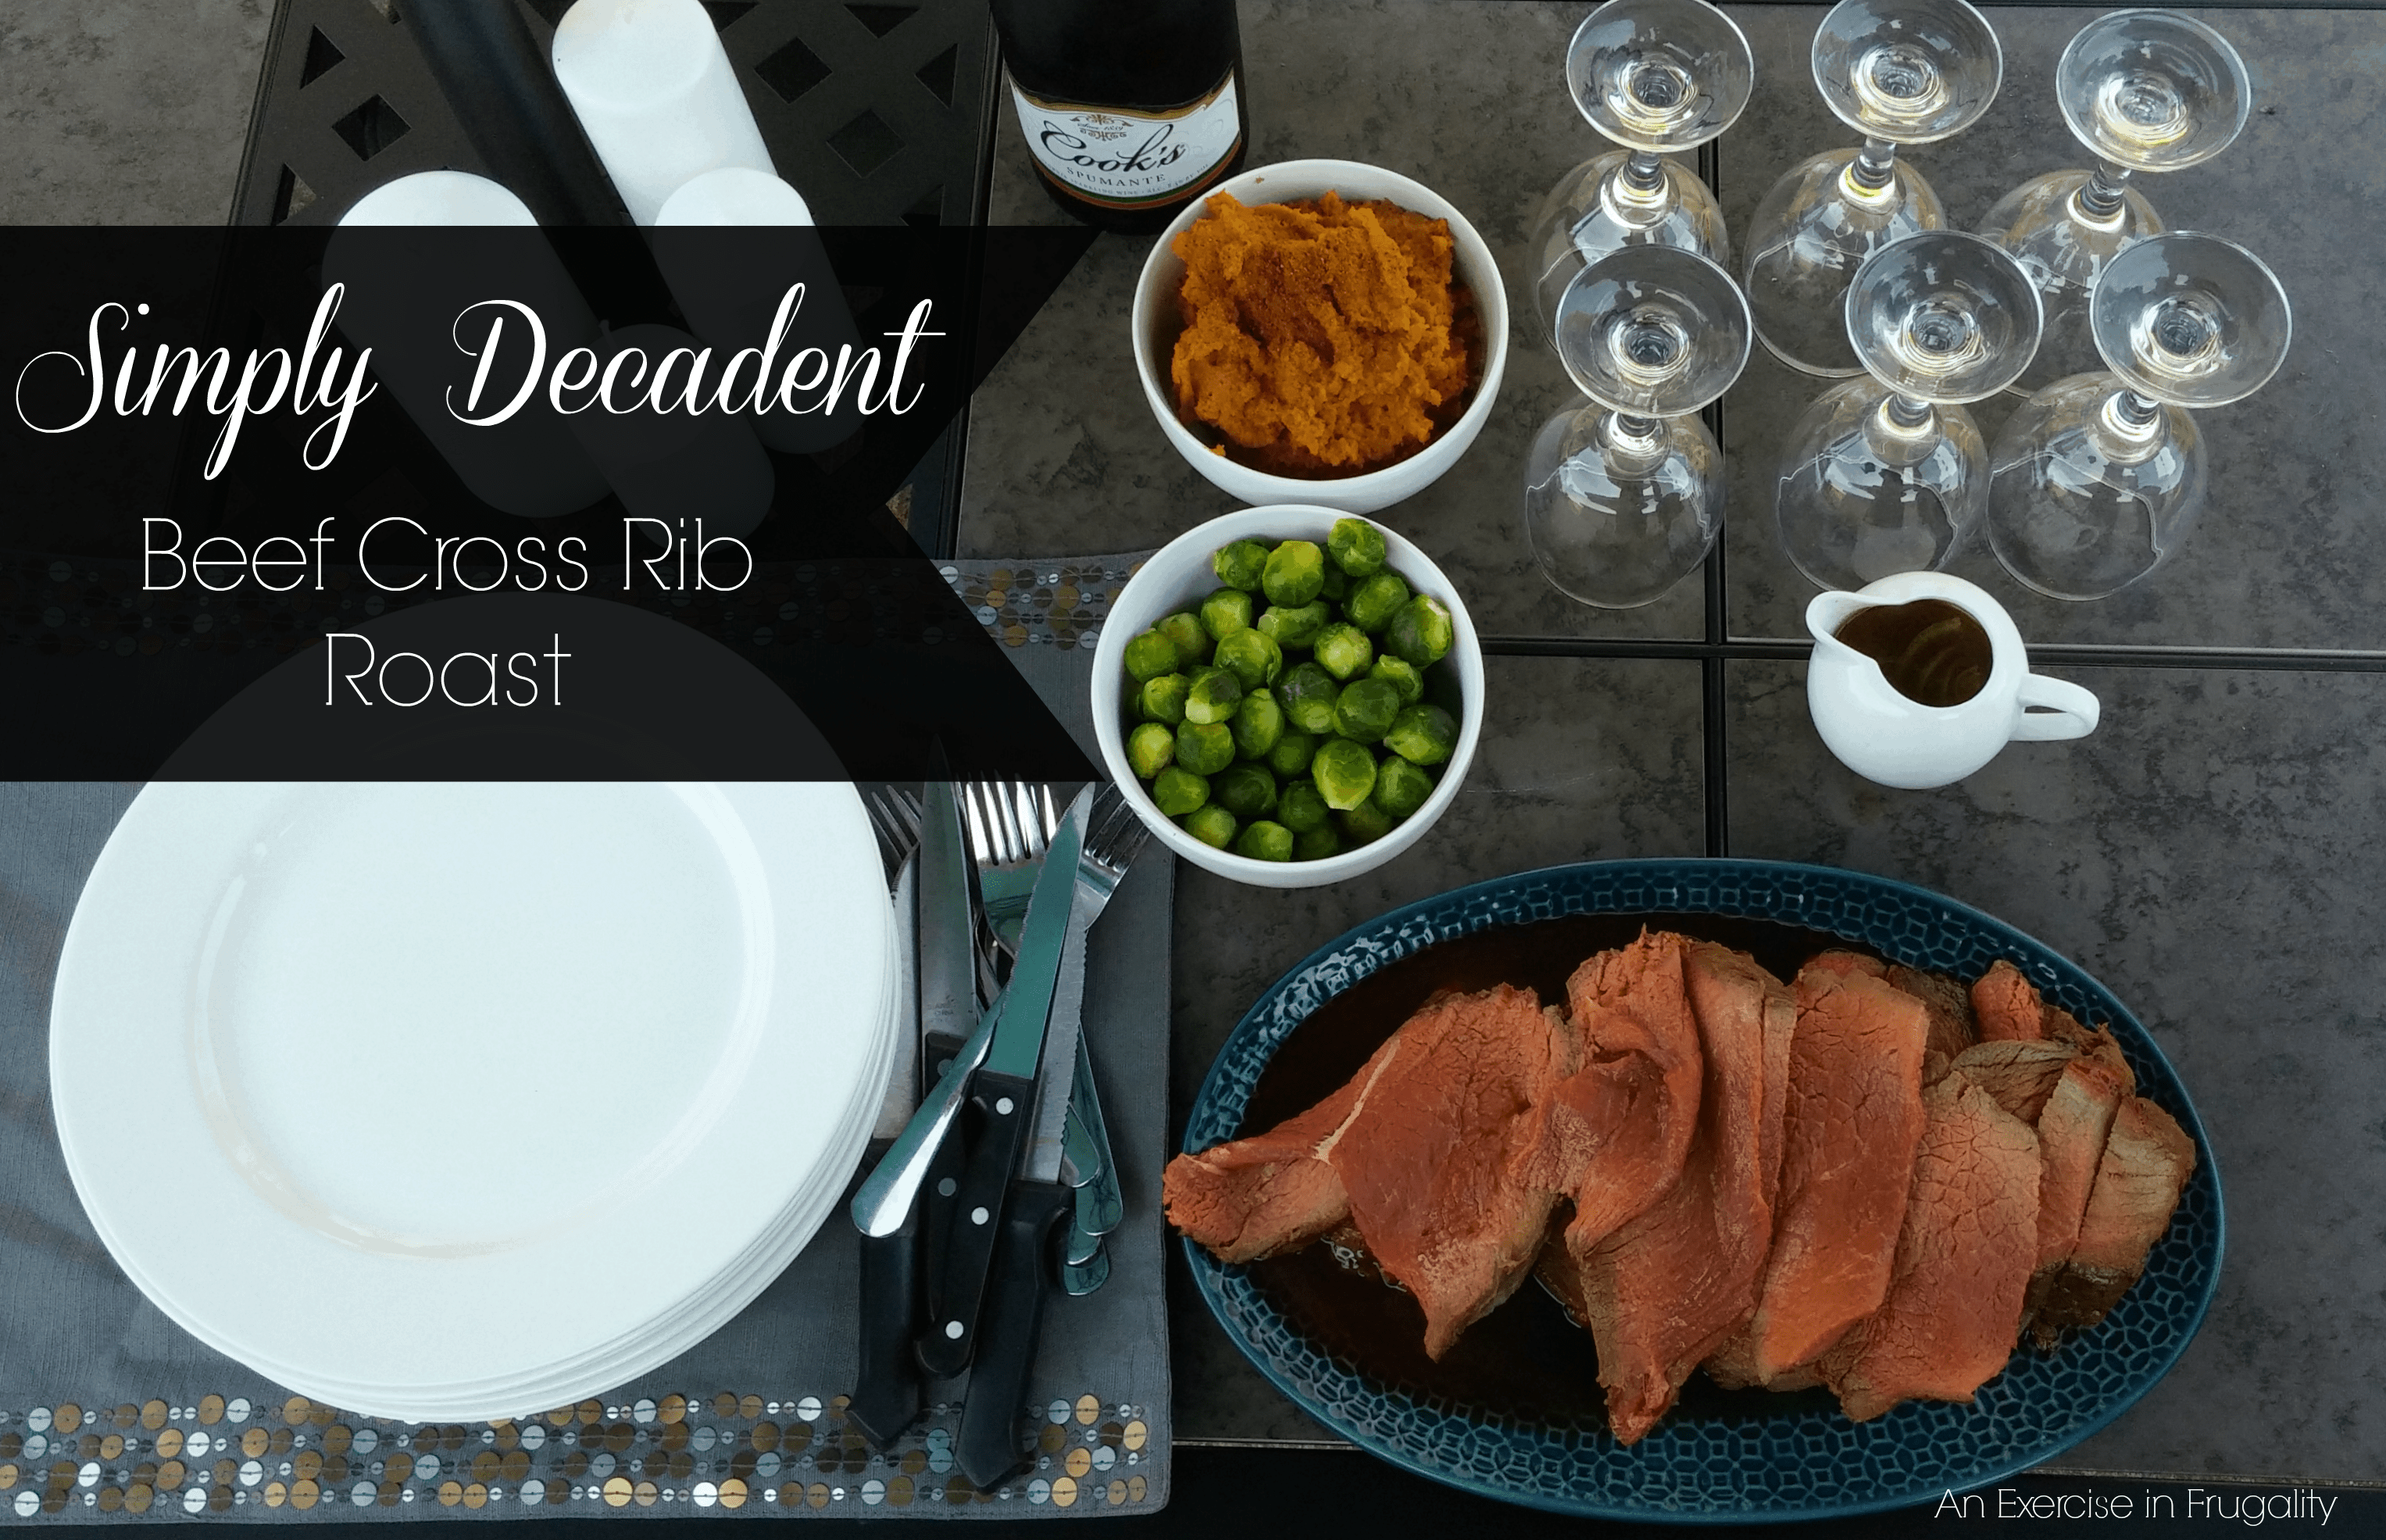 Simply Decadent Cross Rib Roast